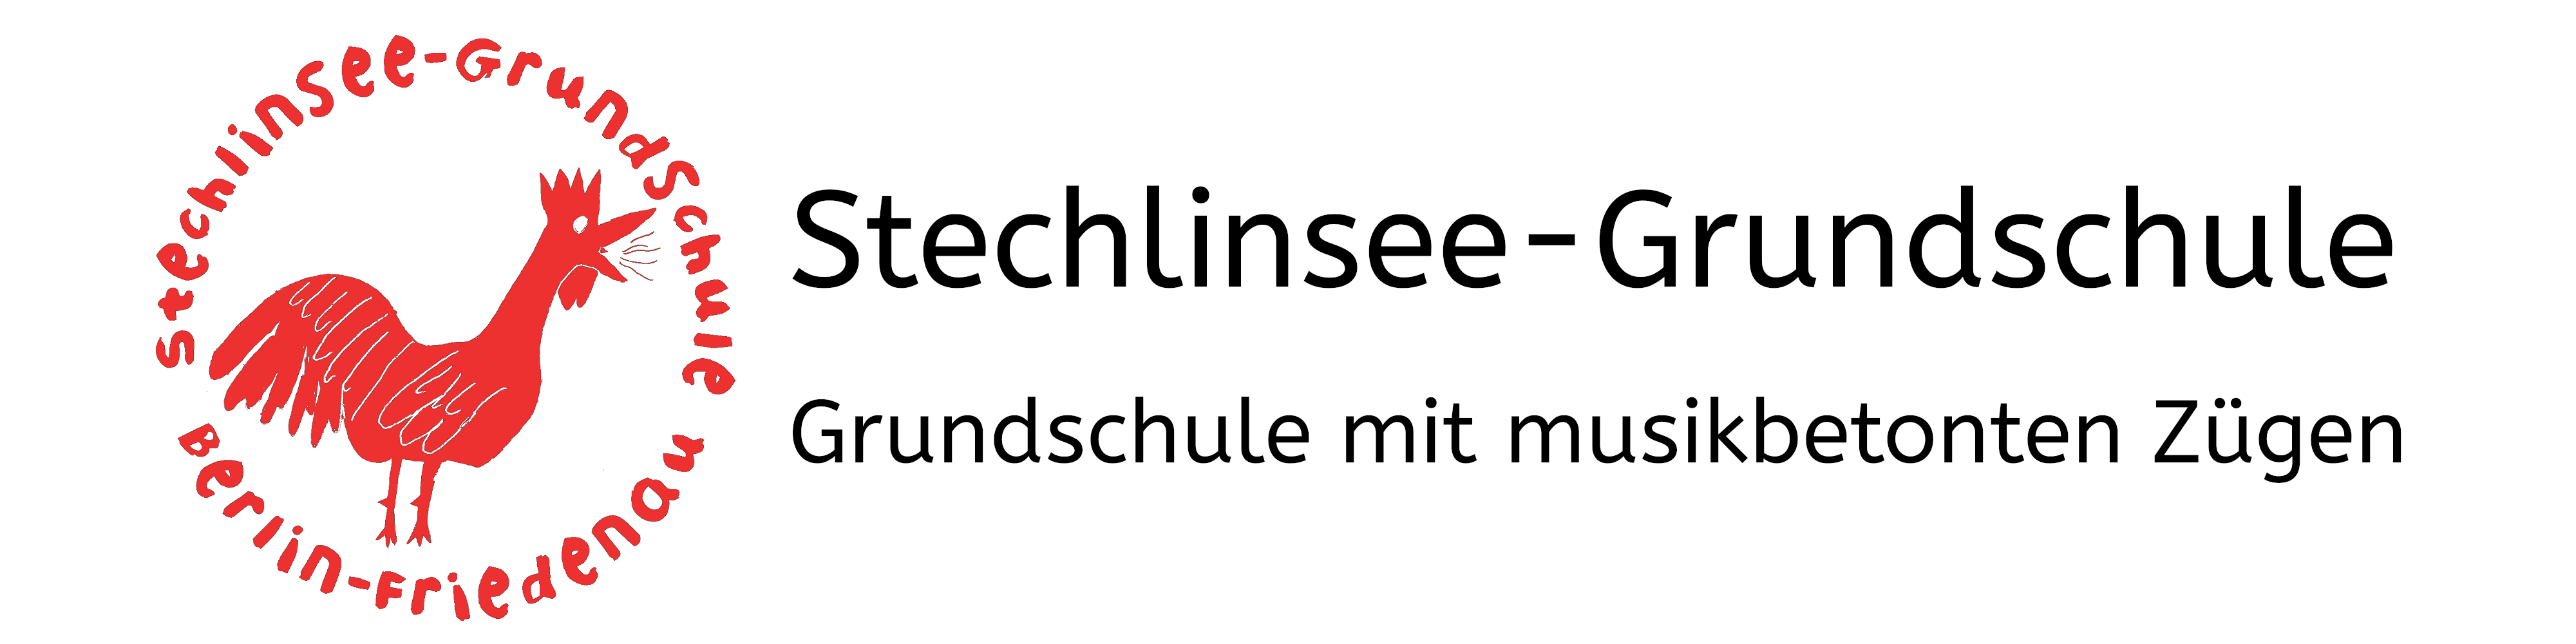 Stechlinsee-Grundschule